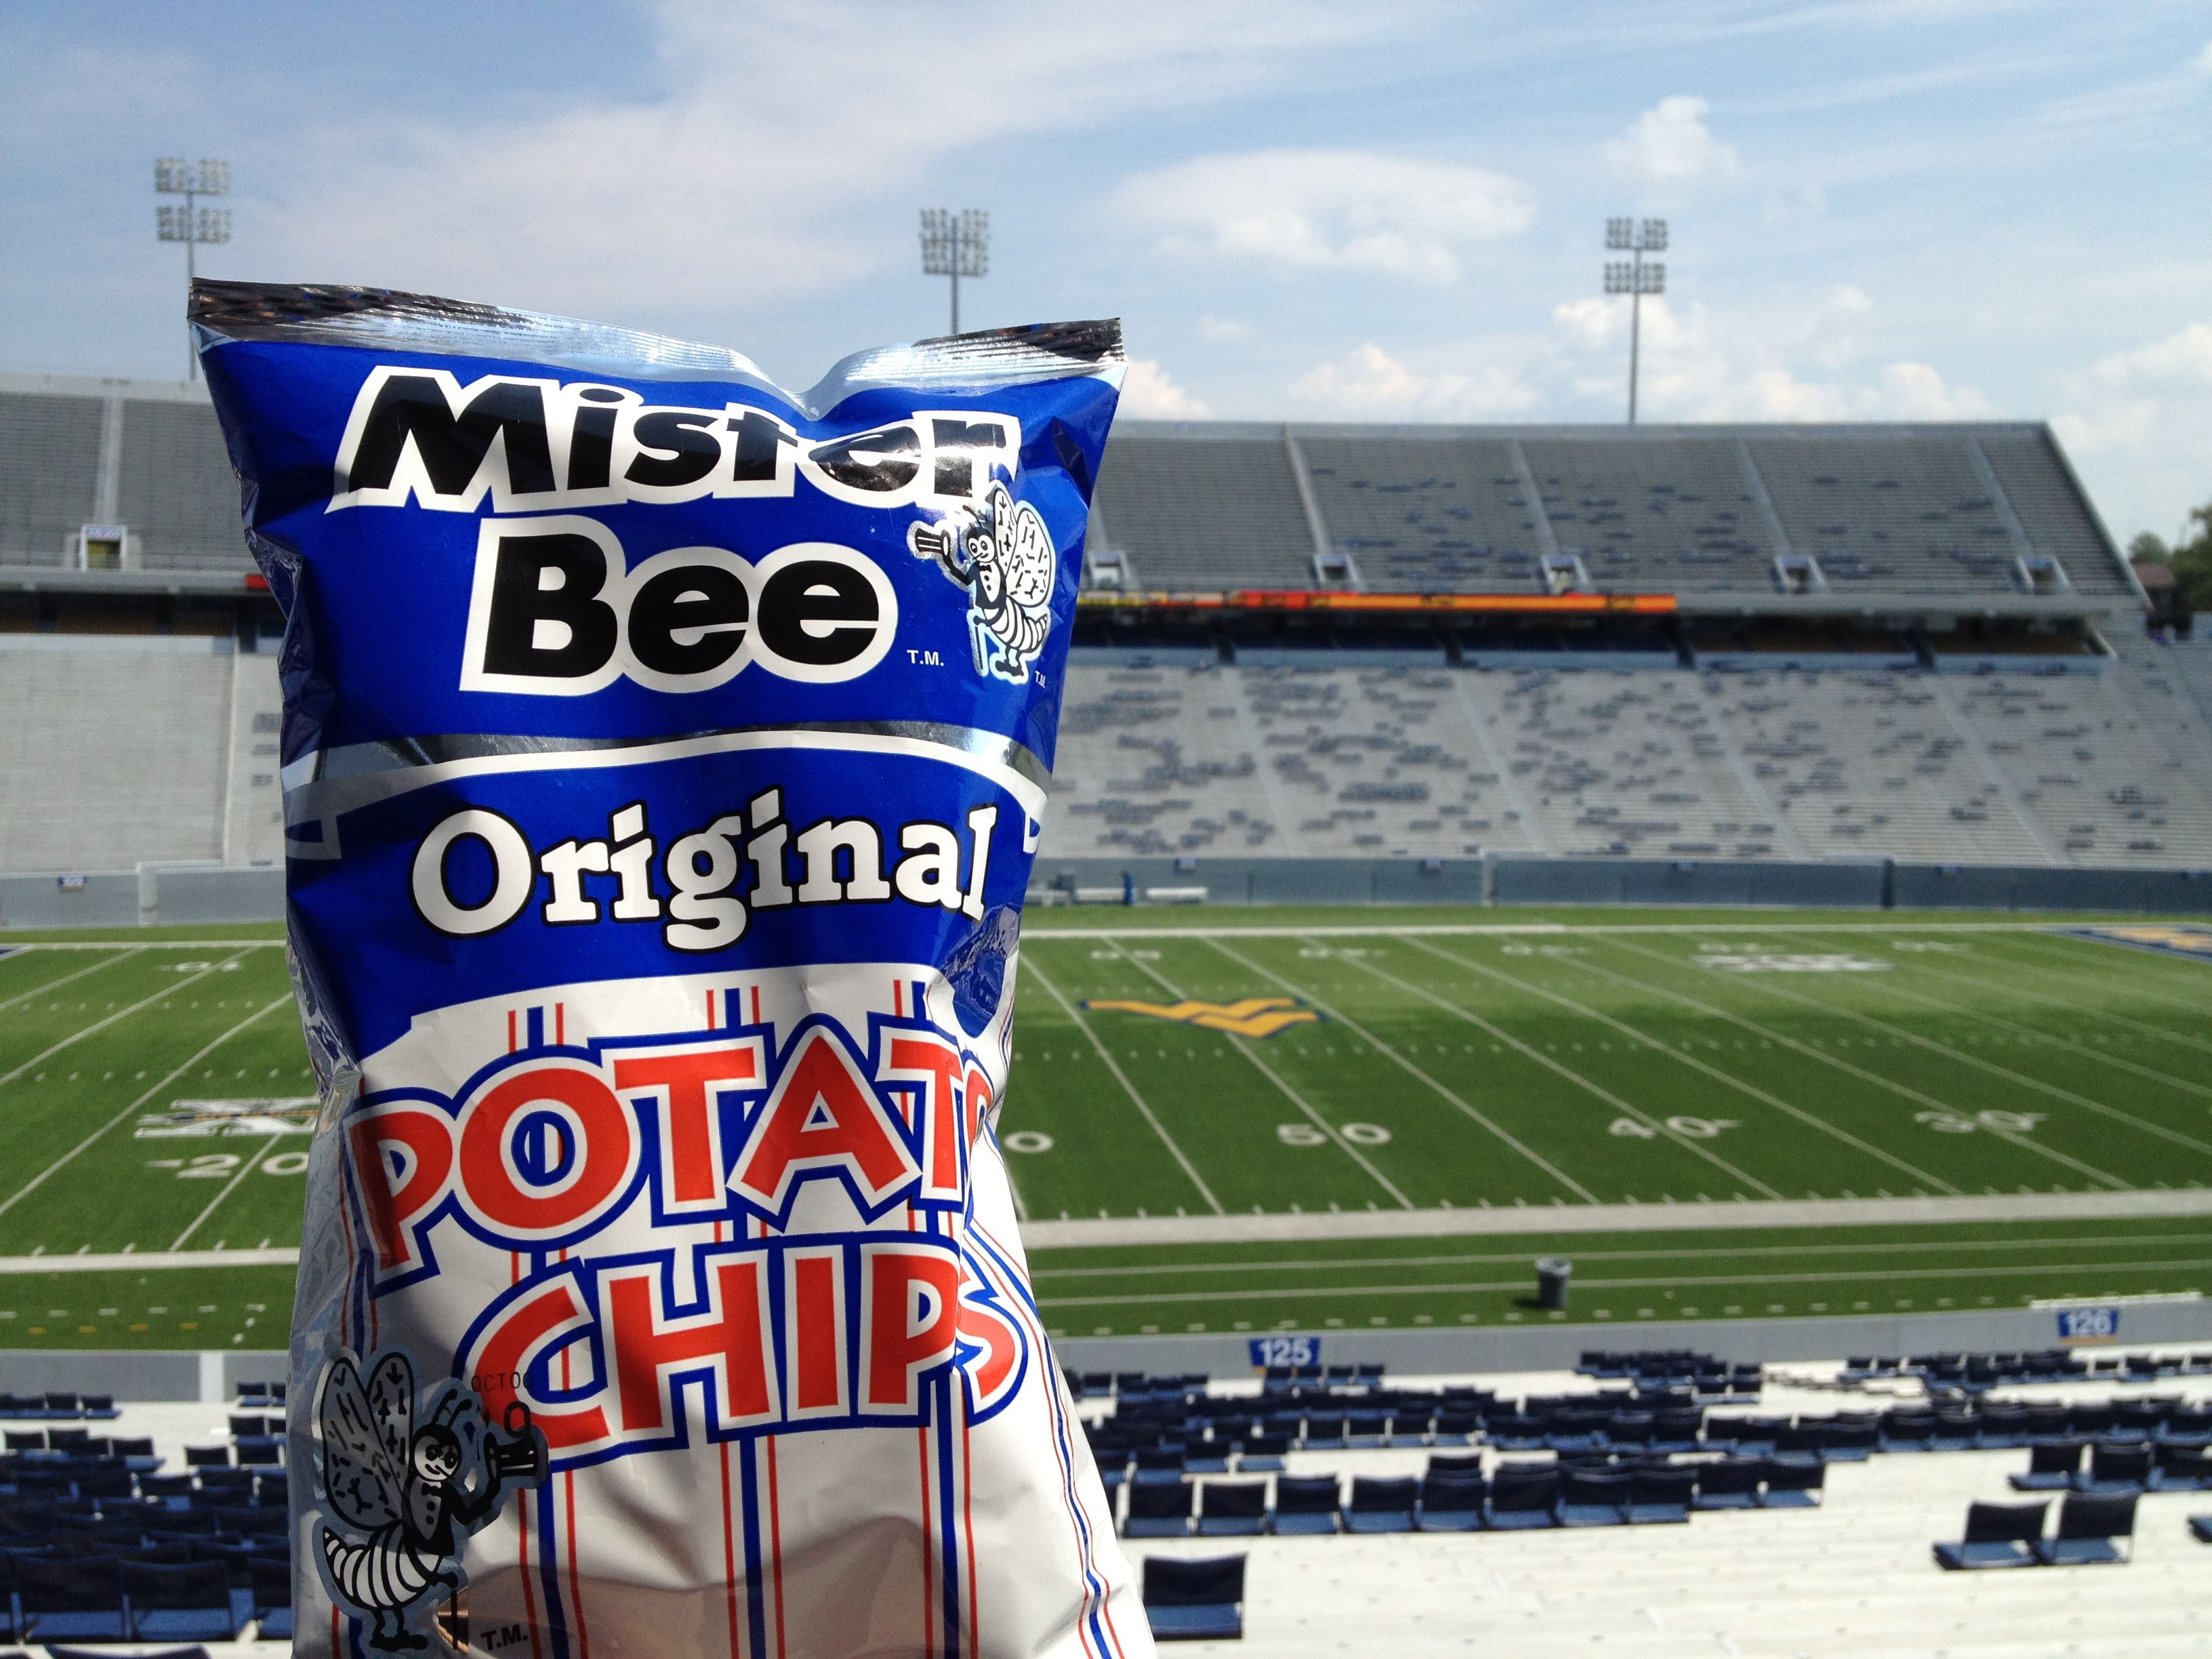 We are proud to serve our product in the state's largest athletic venue.